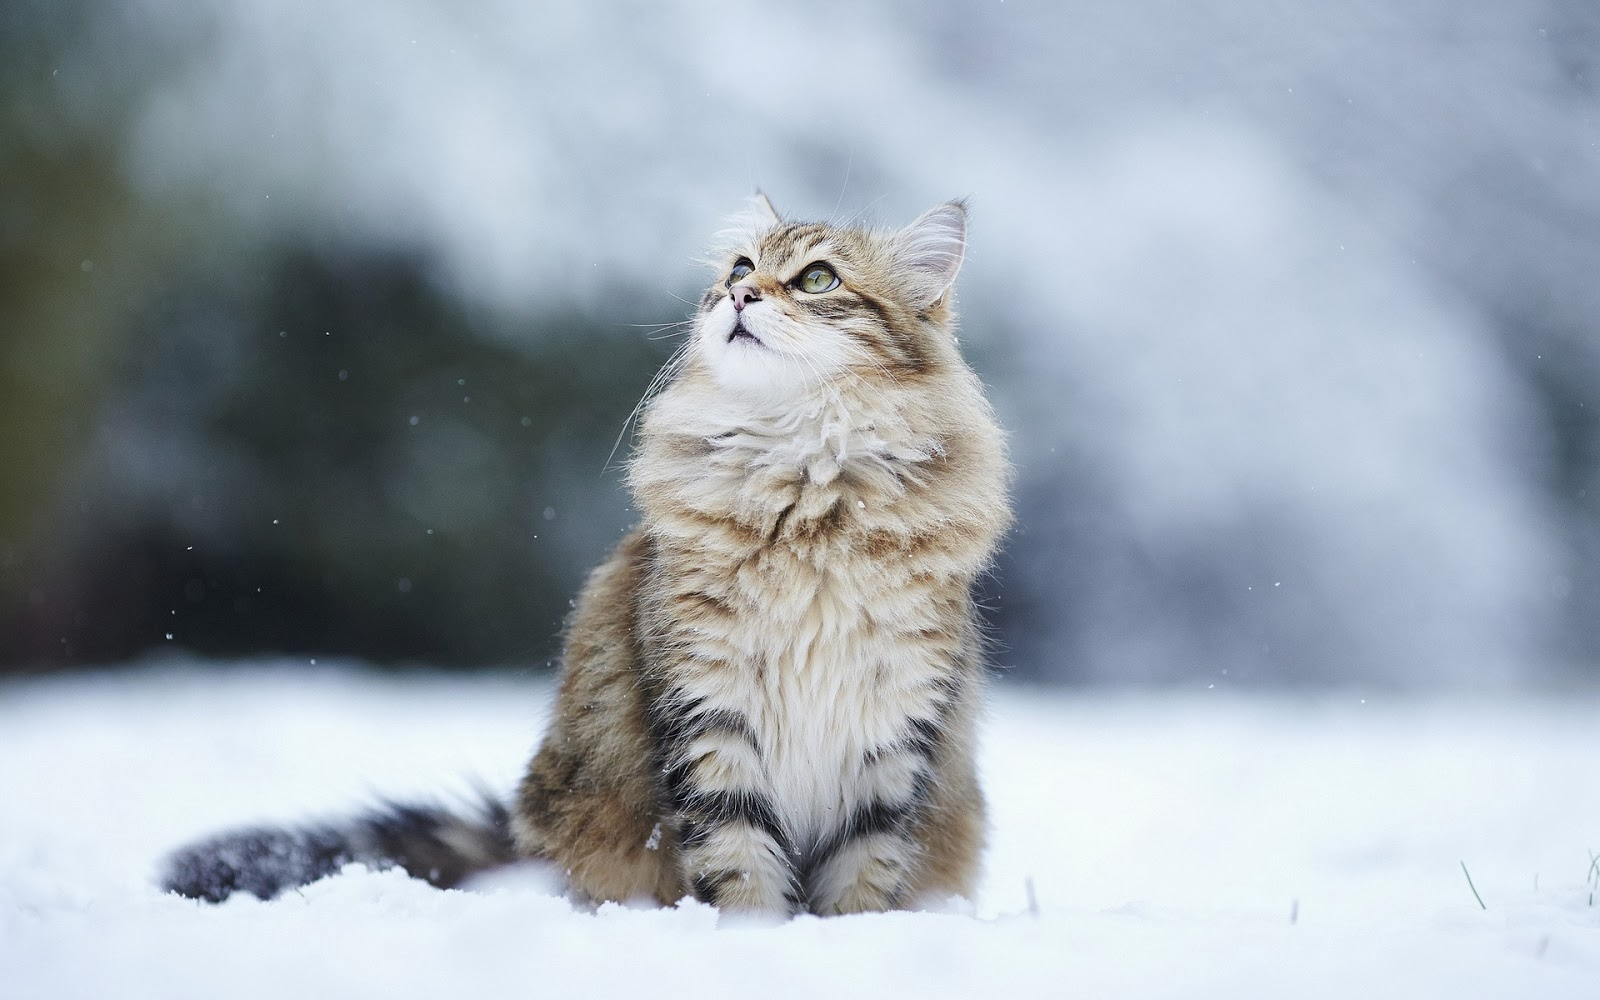 My pictures Snow+White+Cat+HD+Wallpaper